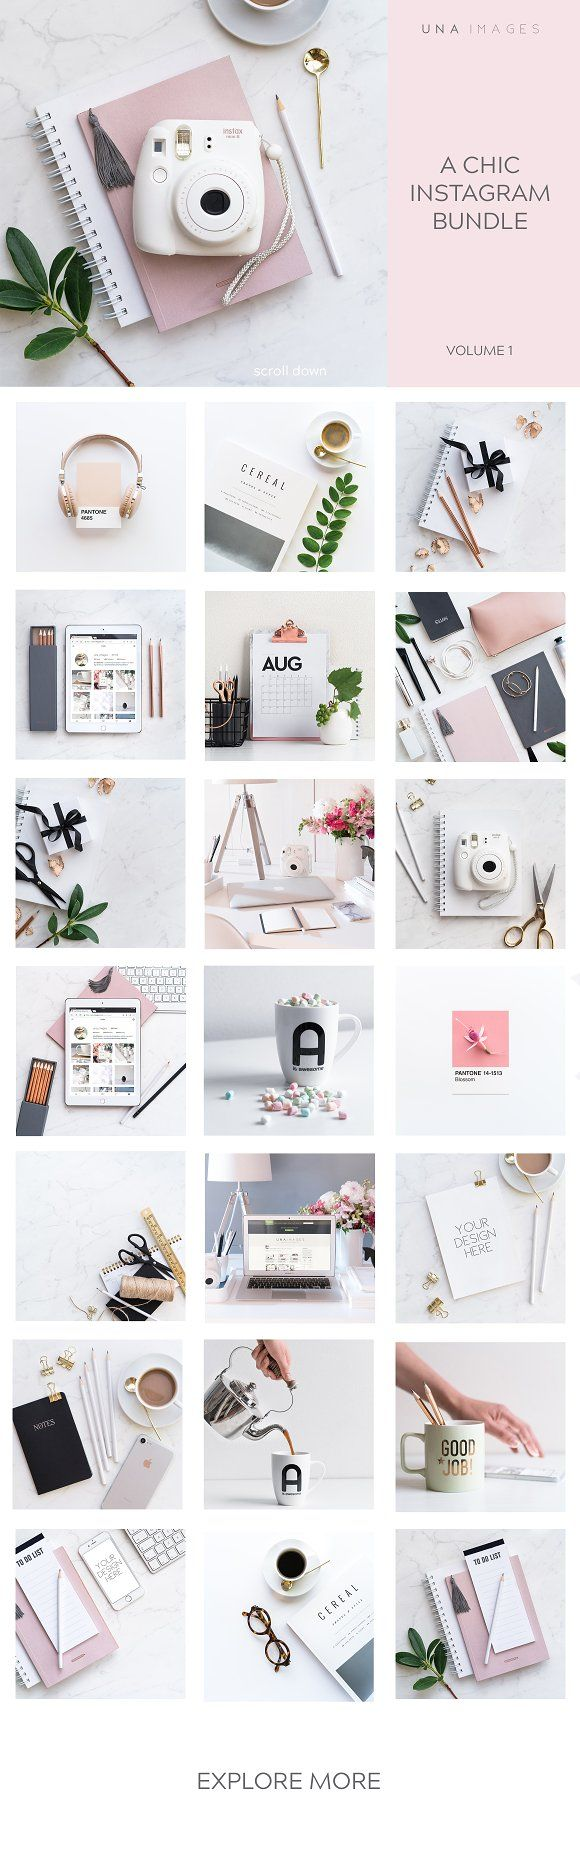 Instagram Photo Bundle by una images on @creativemarket